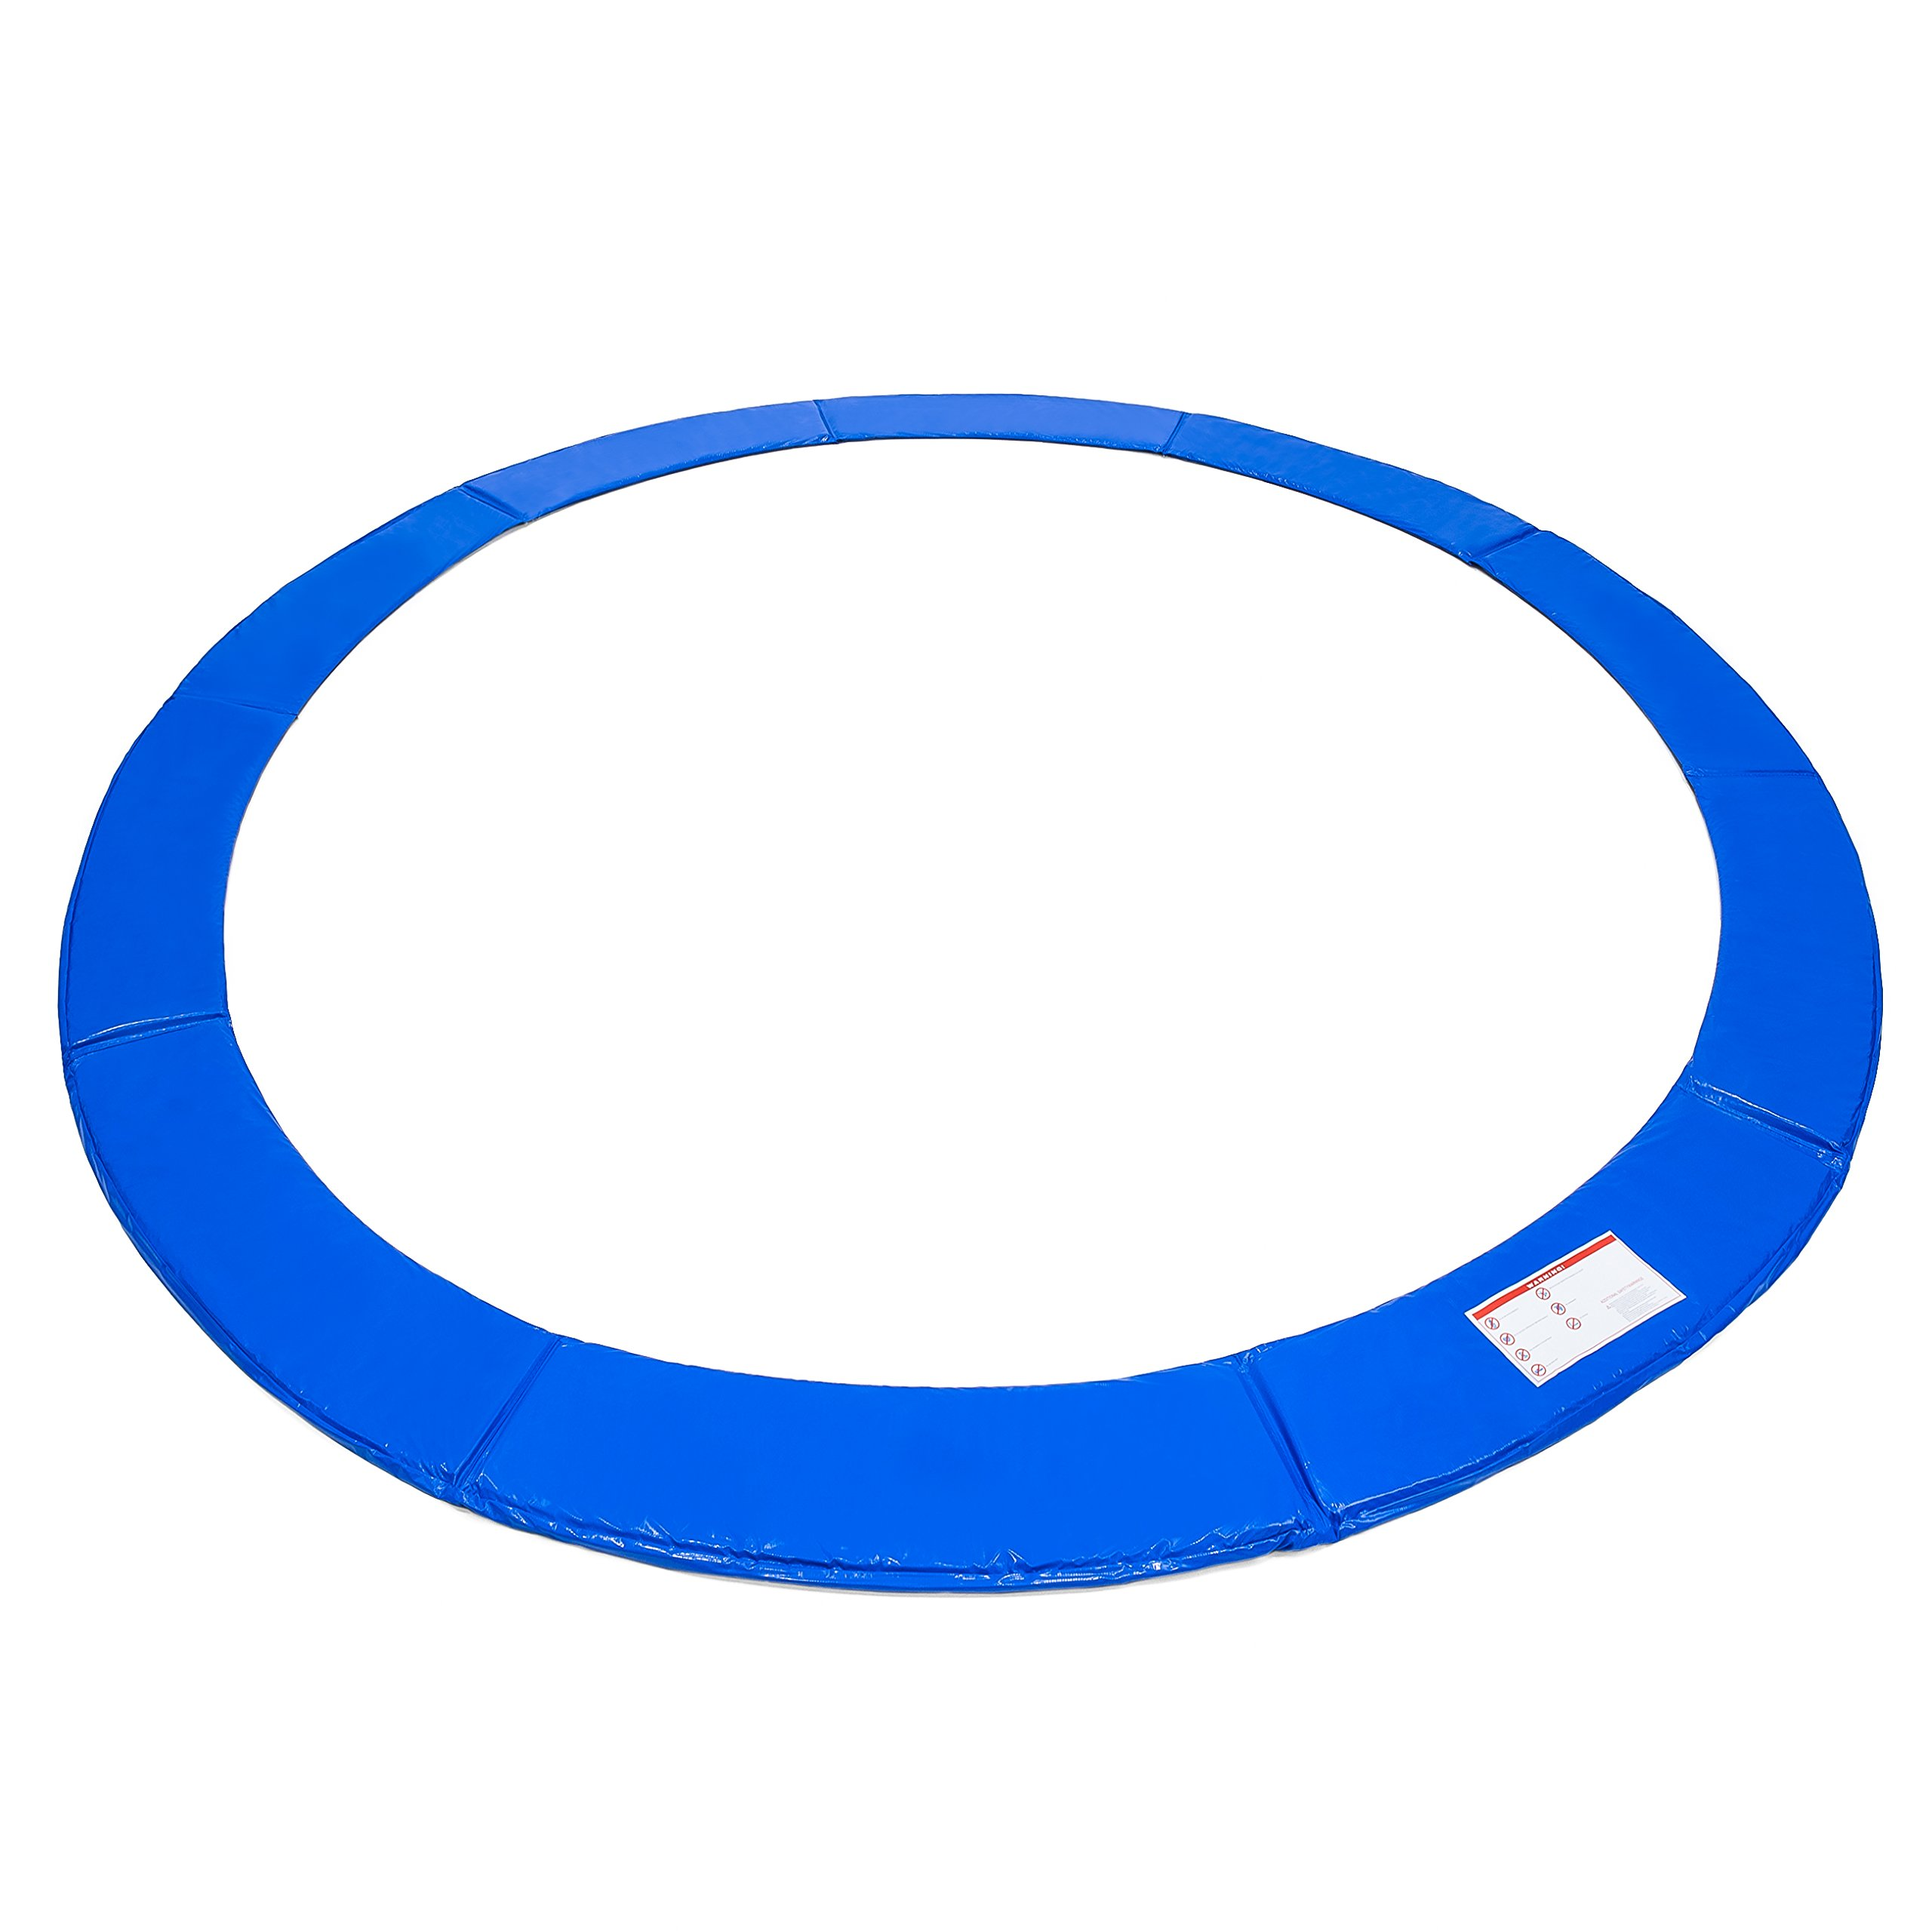 Best Choice Products 12ft Trampoline Safety Pad Spring Cover w/ 21mm Thick Foam Padding - Blue